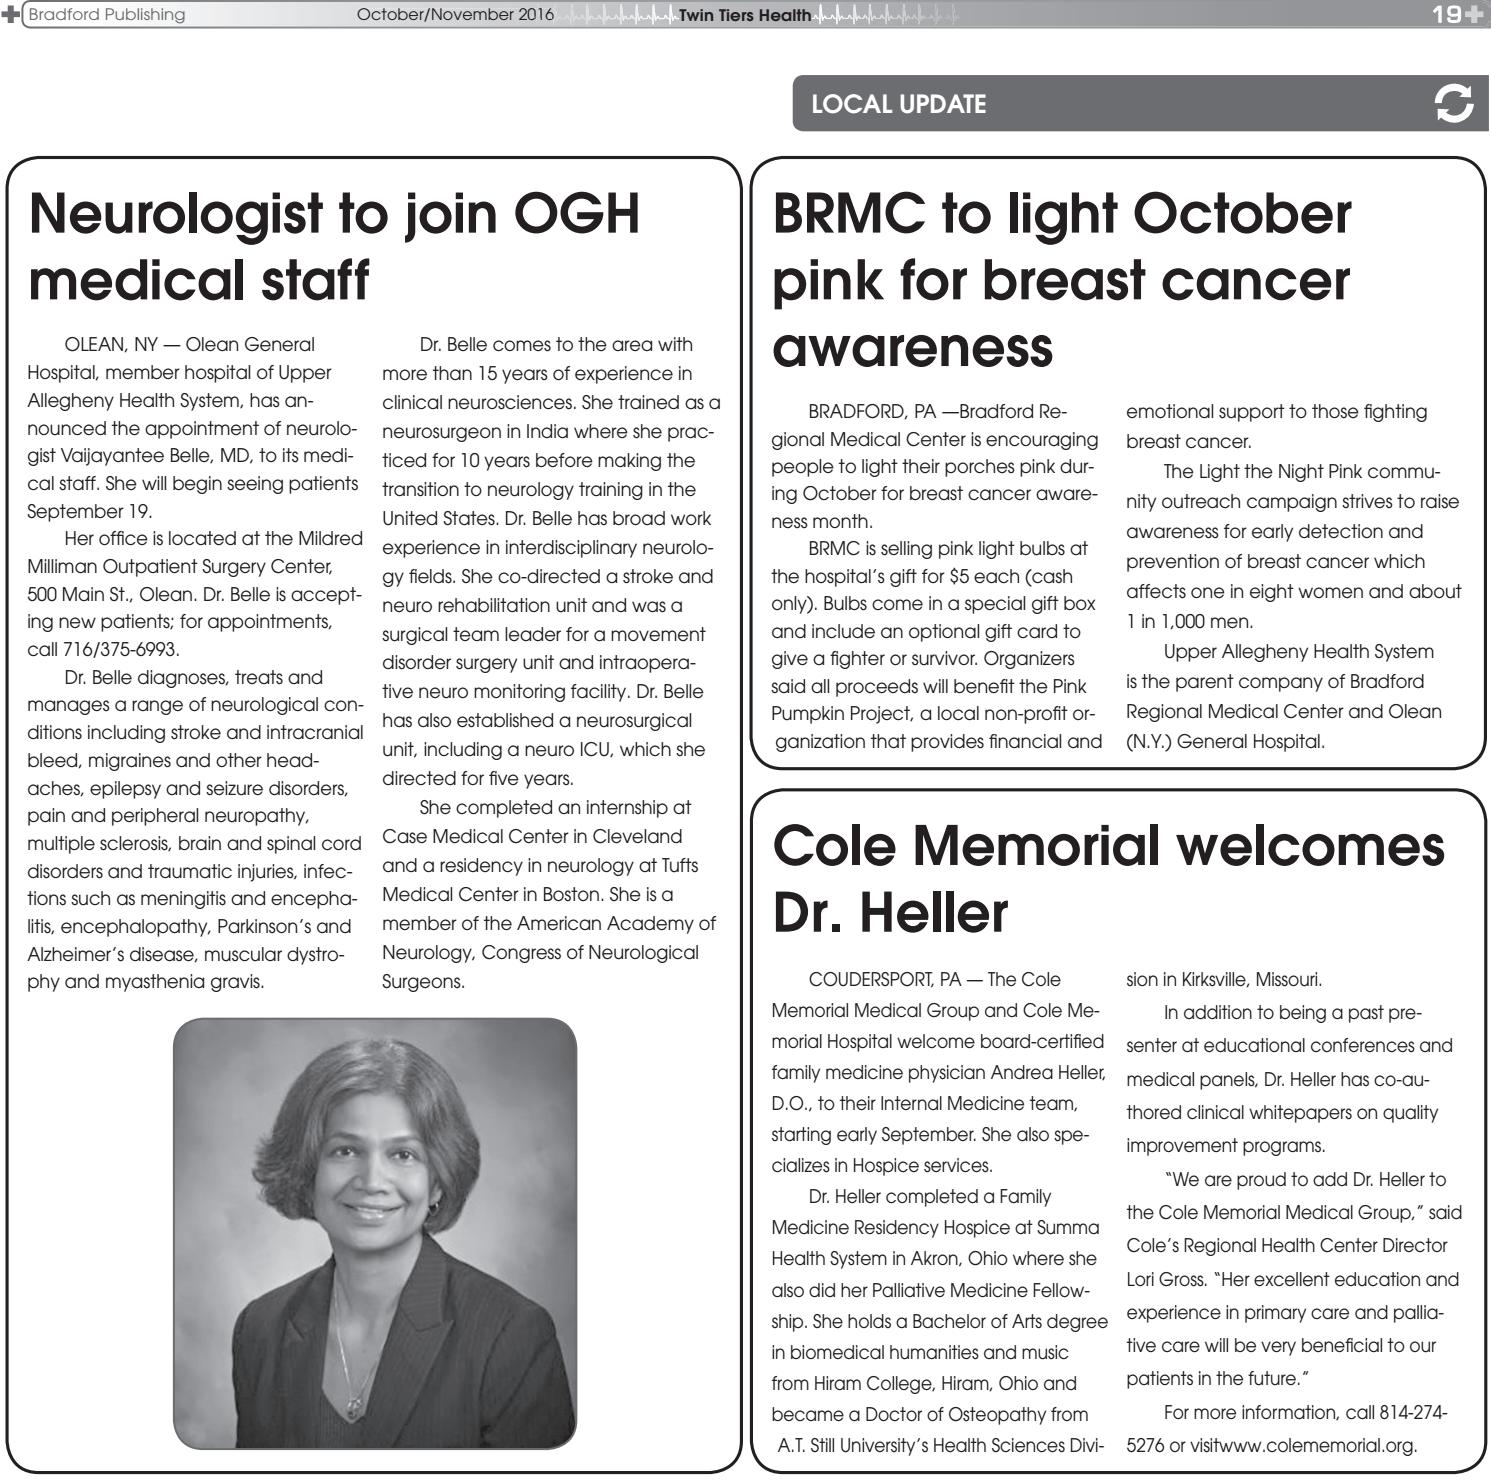 Twin Tiers Health - October 2016 by Bradford Publishing - issuu